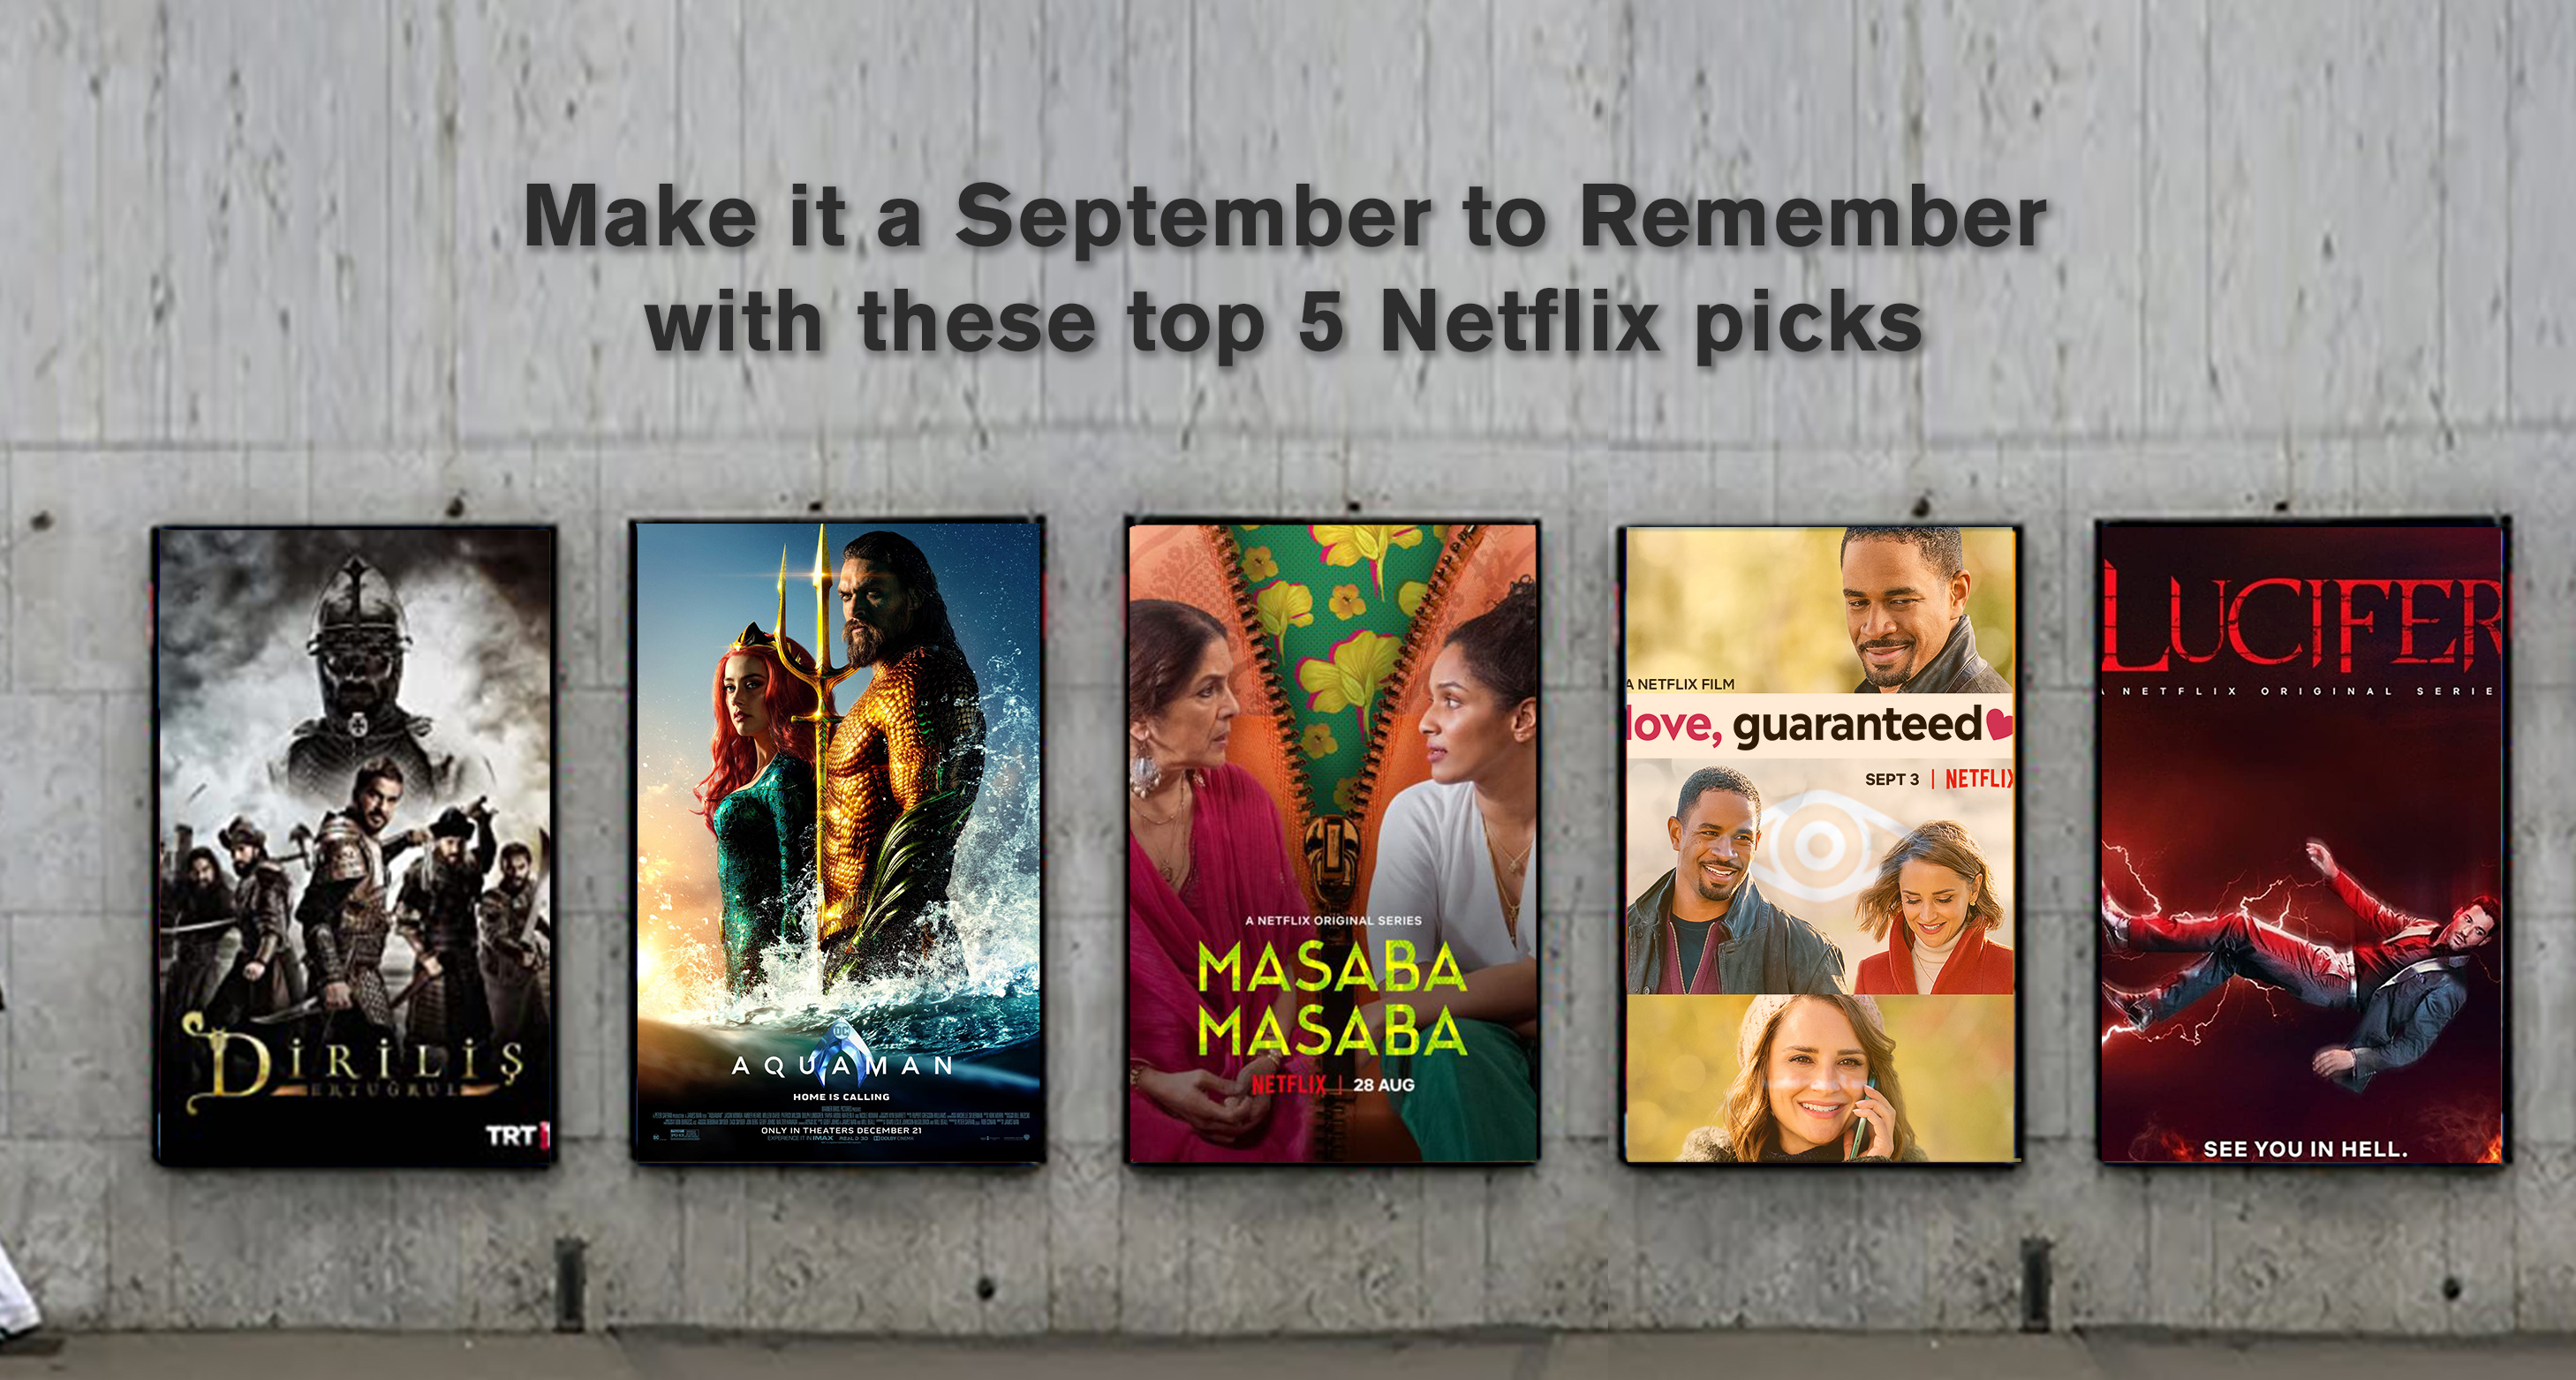 Make it a September to Remember with these top 5 Netflix picks